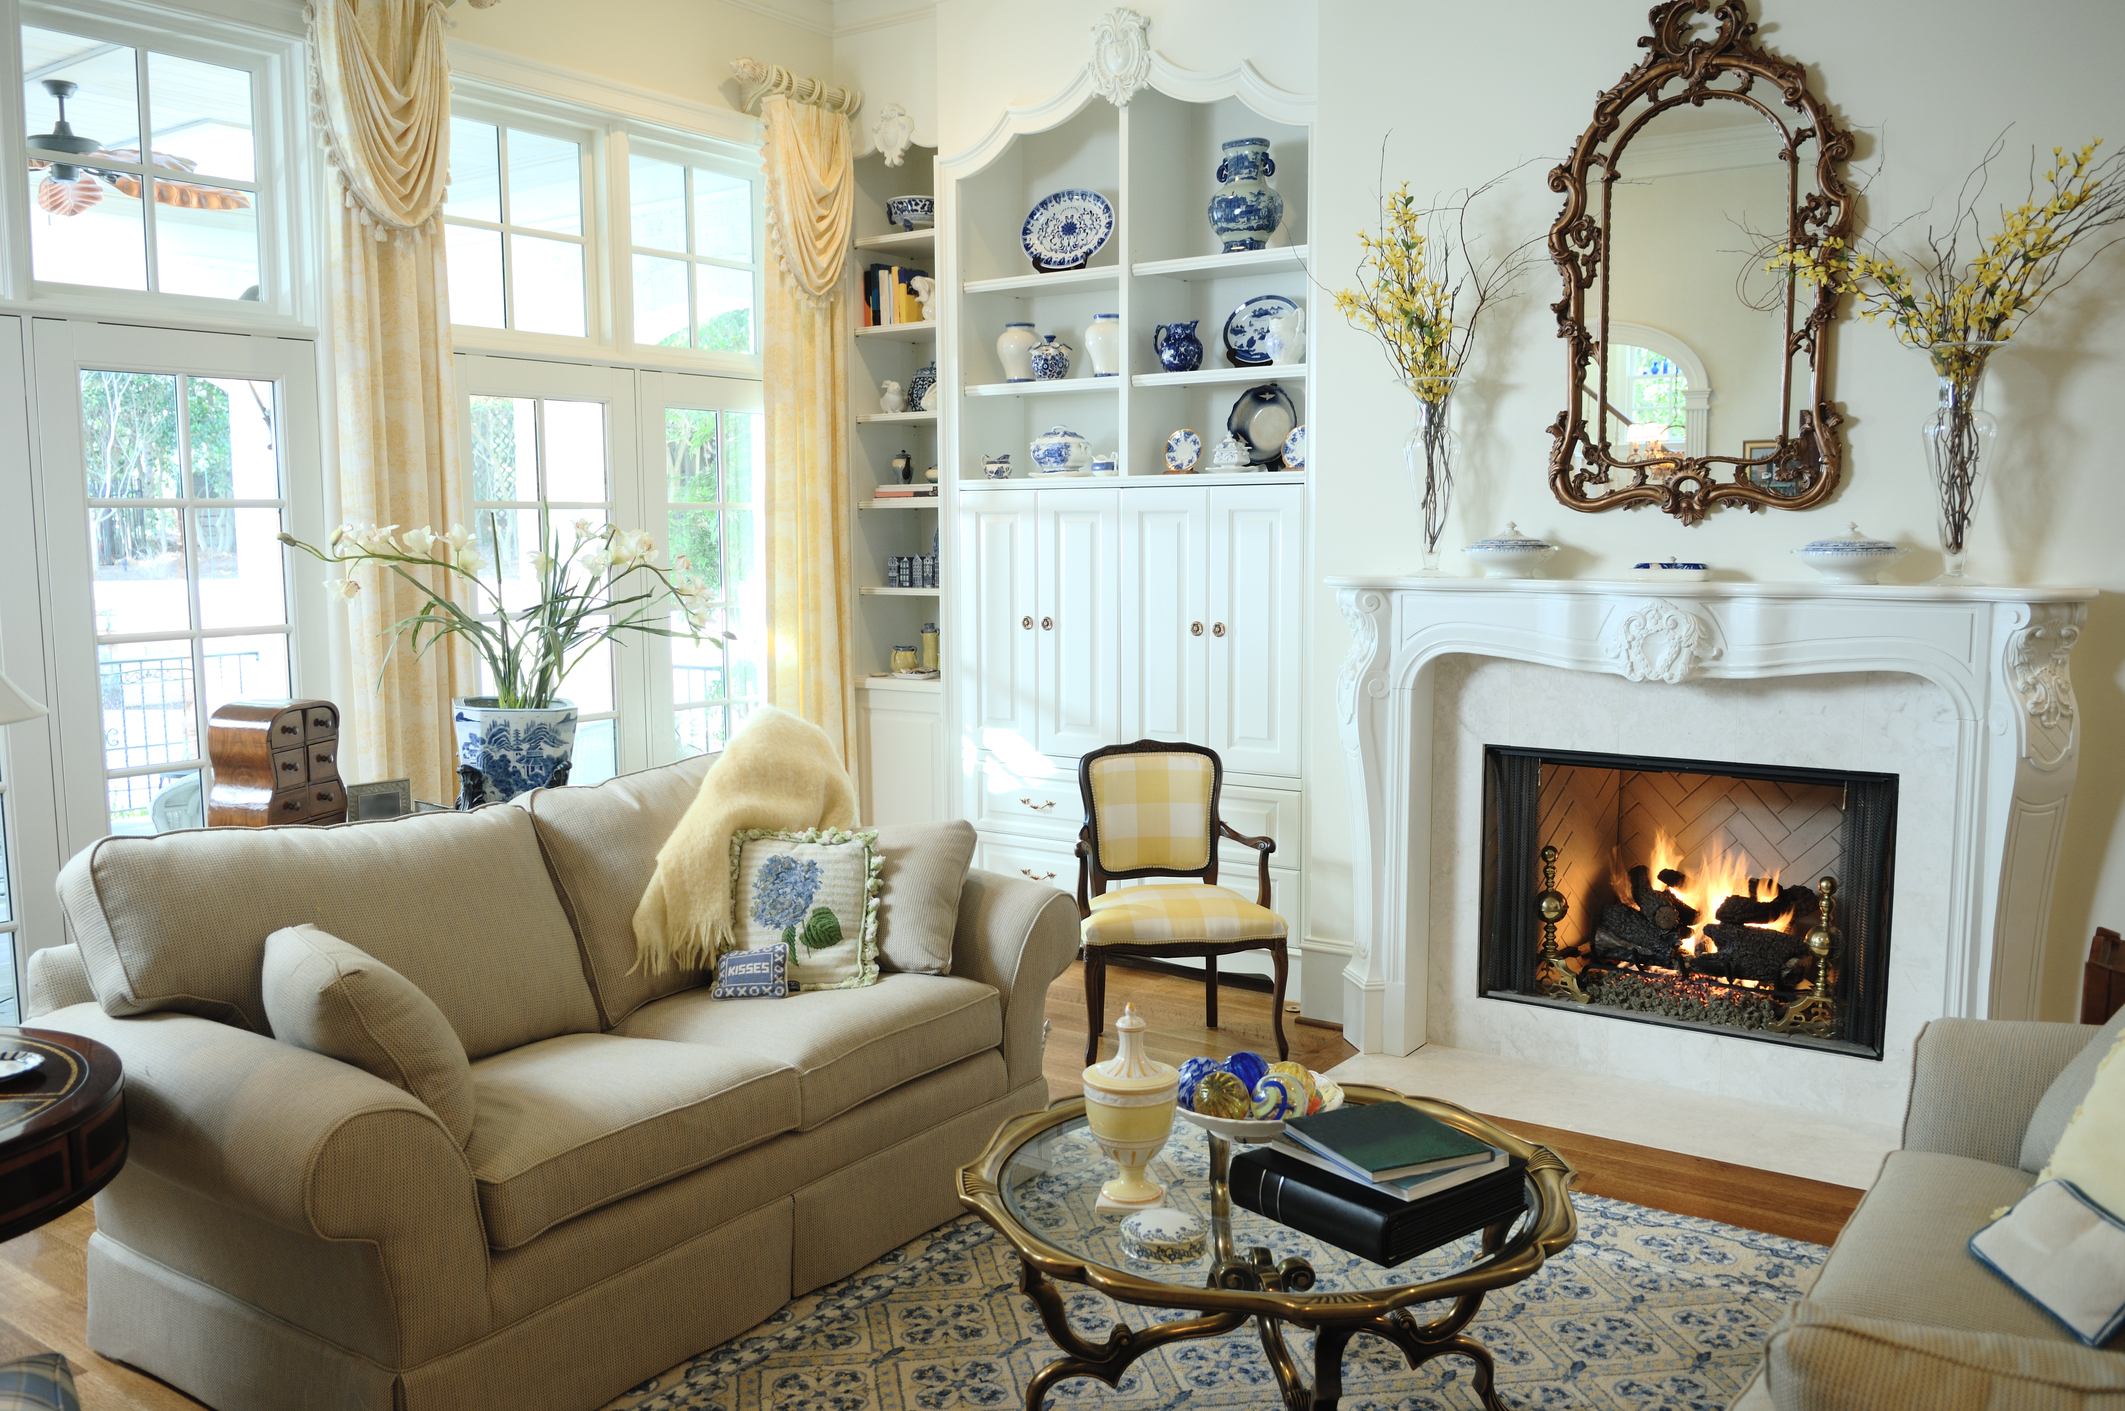 Feng Shui Rules For A Mirror Over The Fireplace Lovetoknow